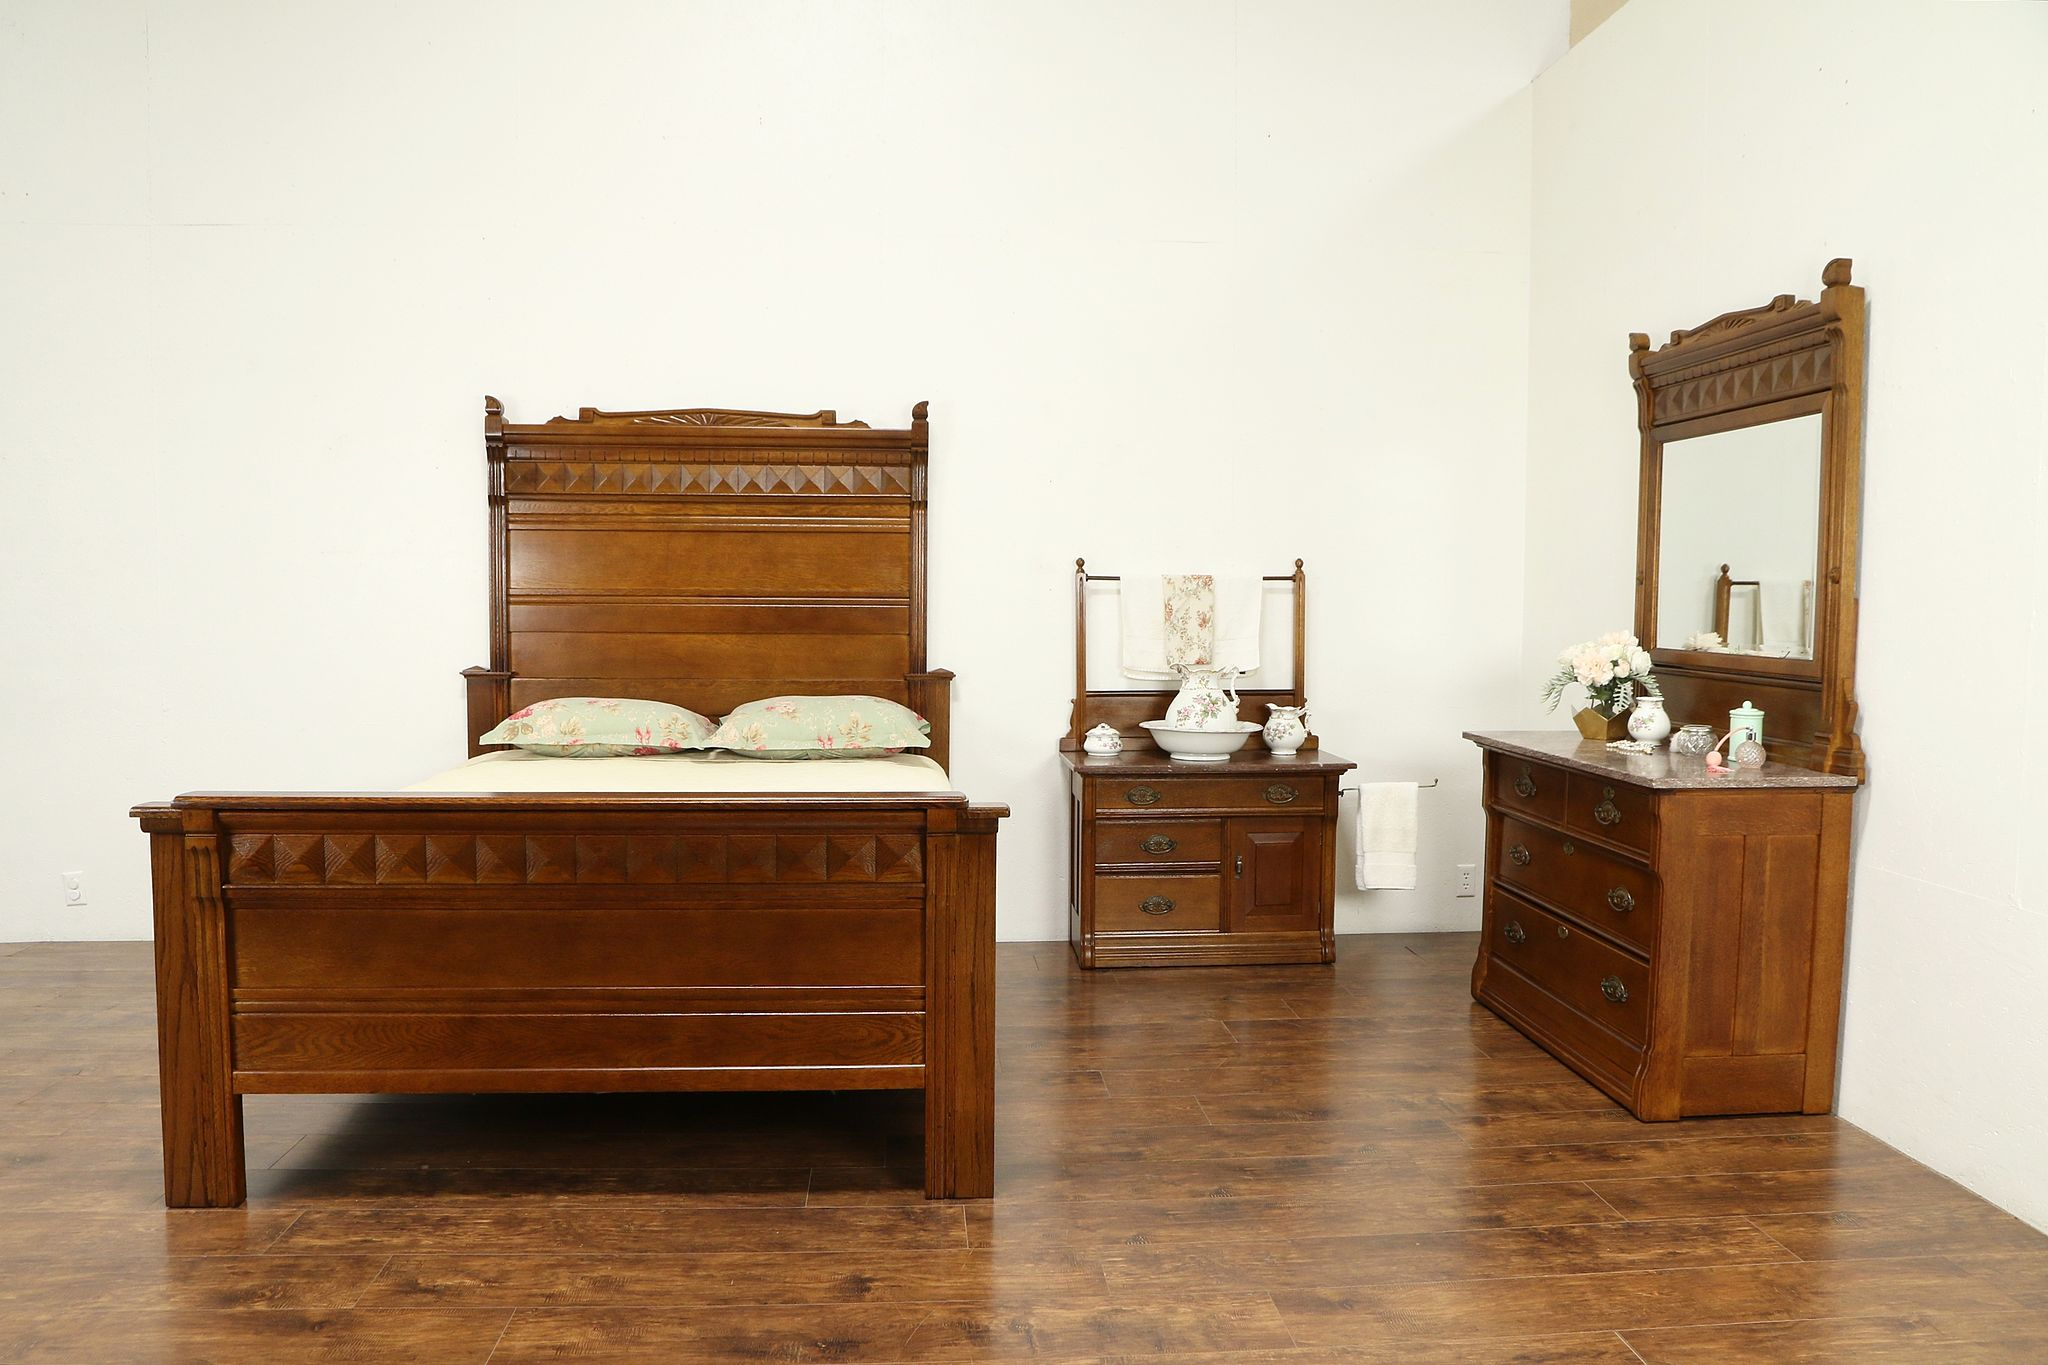 Victorian Antique Oak 3 Pc Bedroom Set, Queen Size Bed #30824